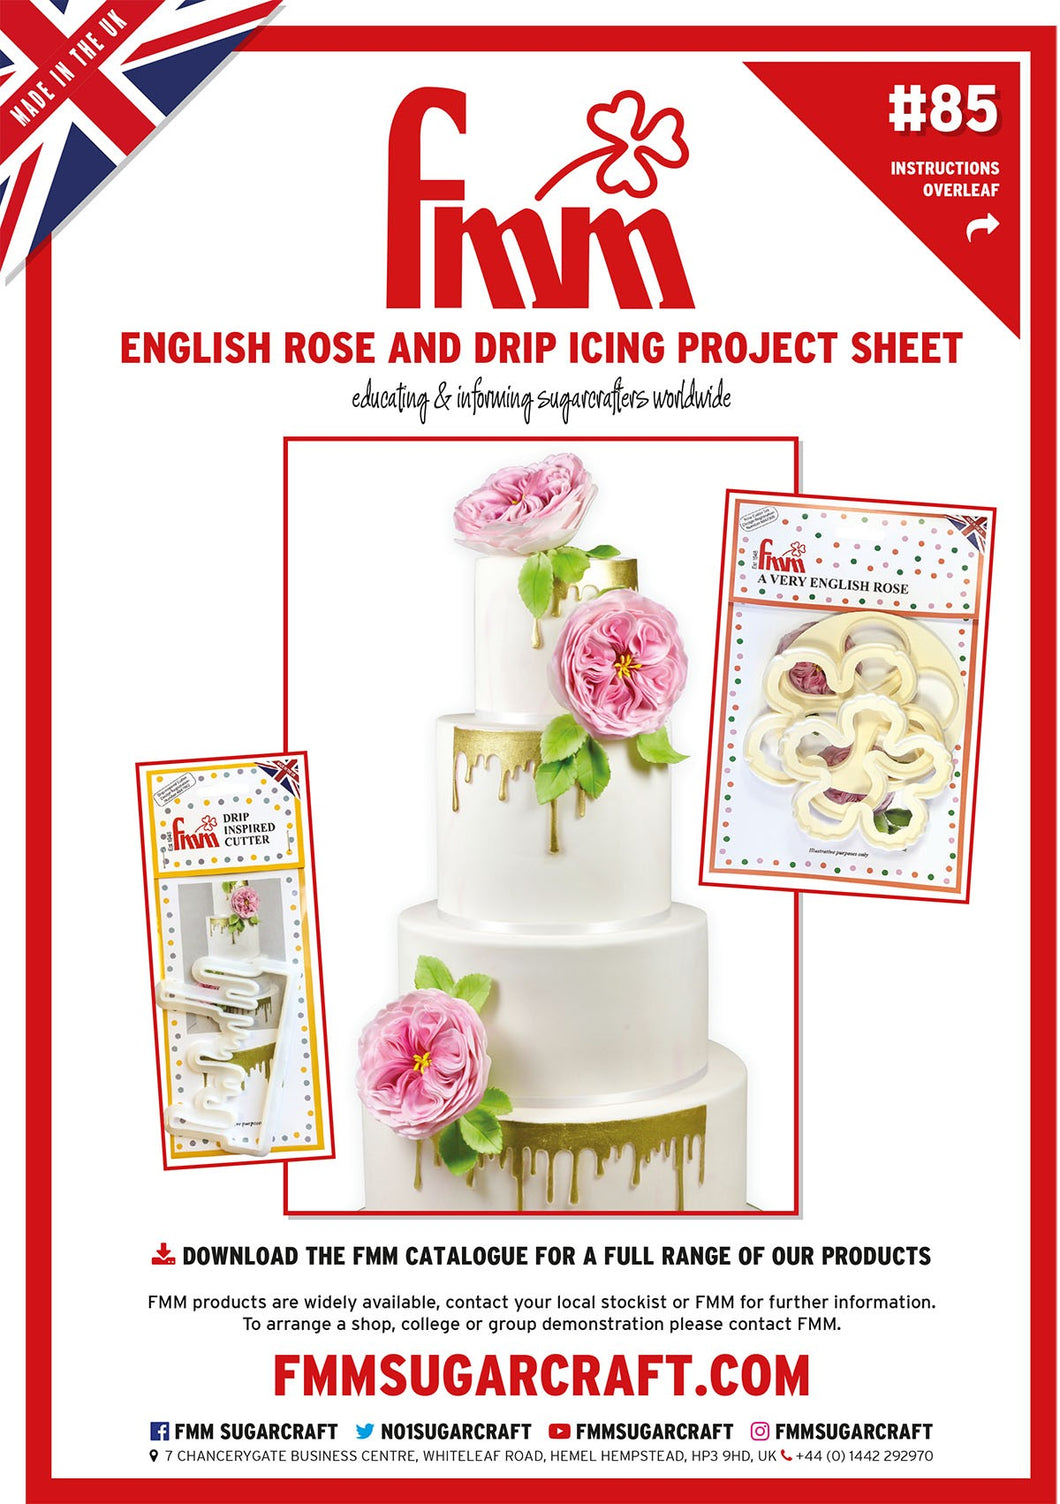 A Very English Rose and Drip Cutters Project Sheet